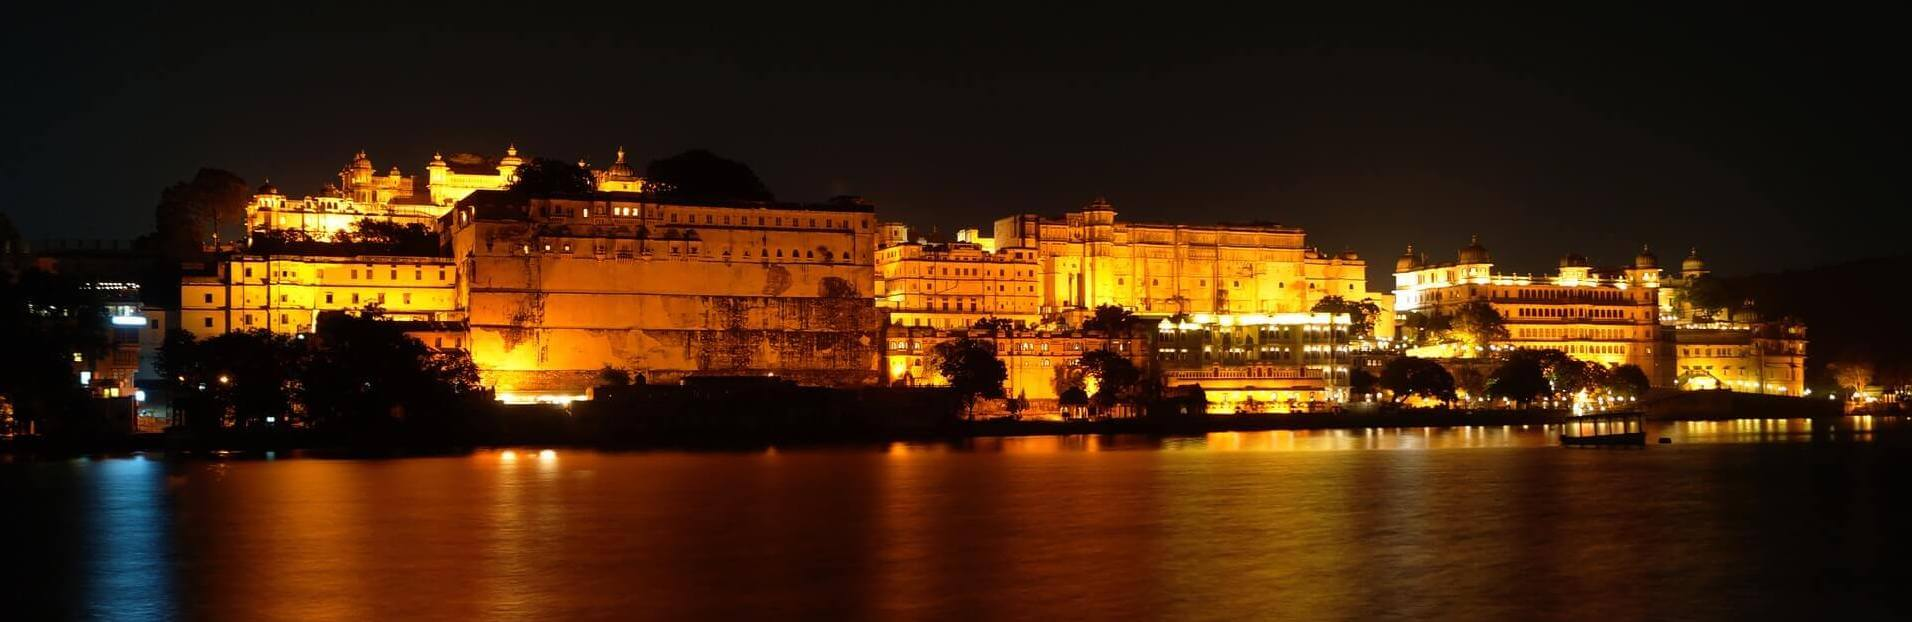 Udaipur District: City of Lakes, History, Places, Tourist Attractions